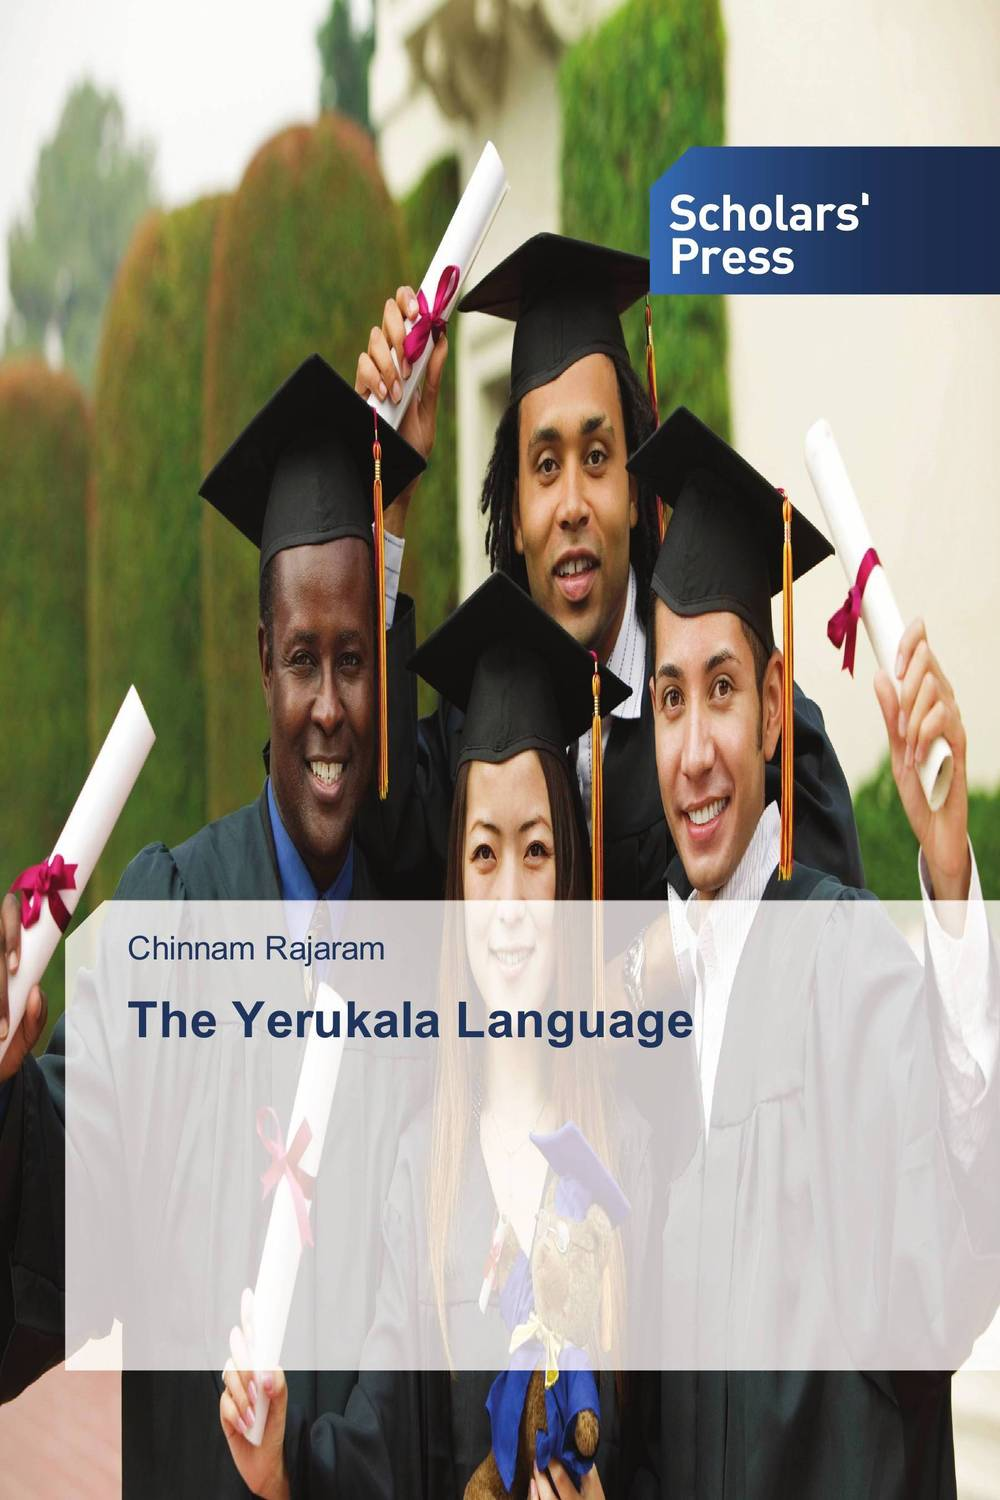 The Yerukala Language caleb williams or things as they are